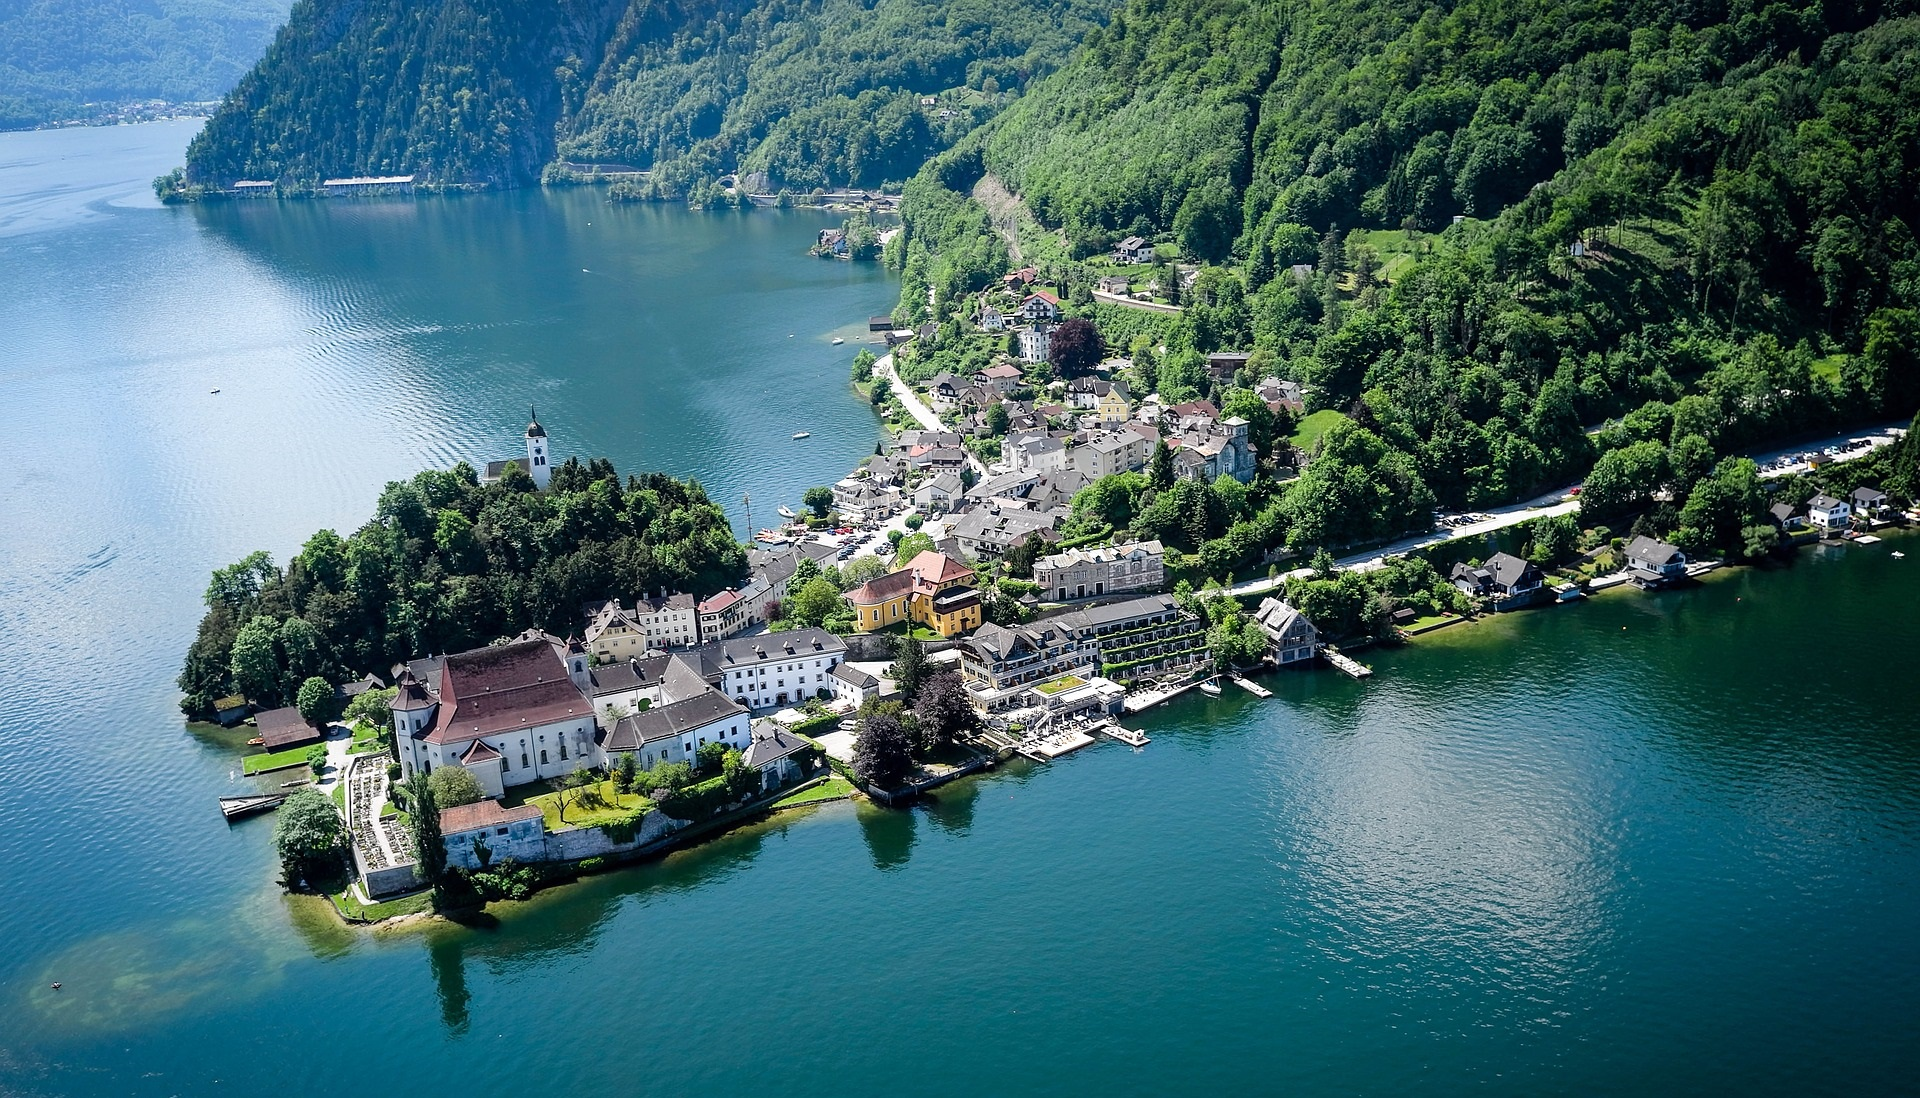 traunsee-4181723_1920